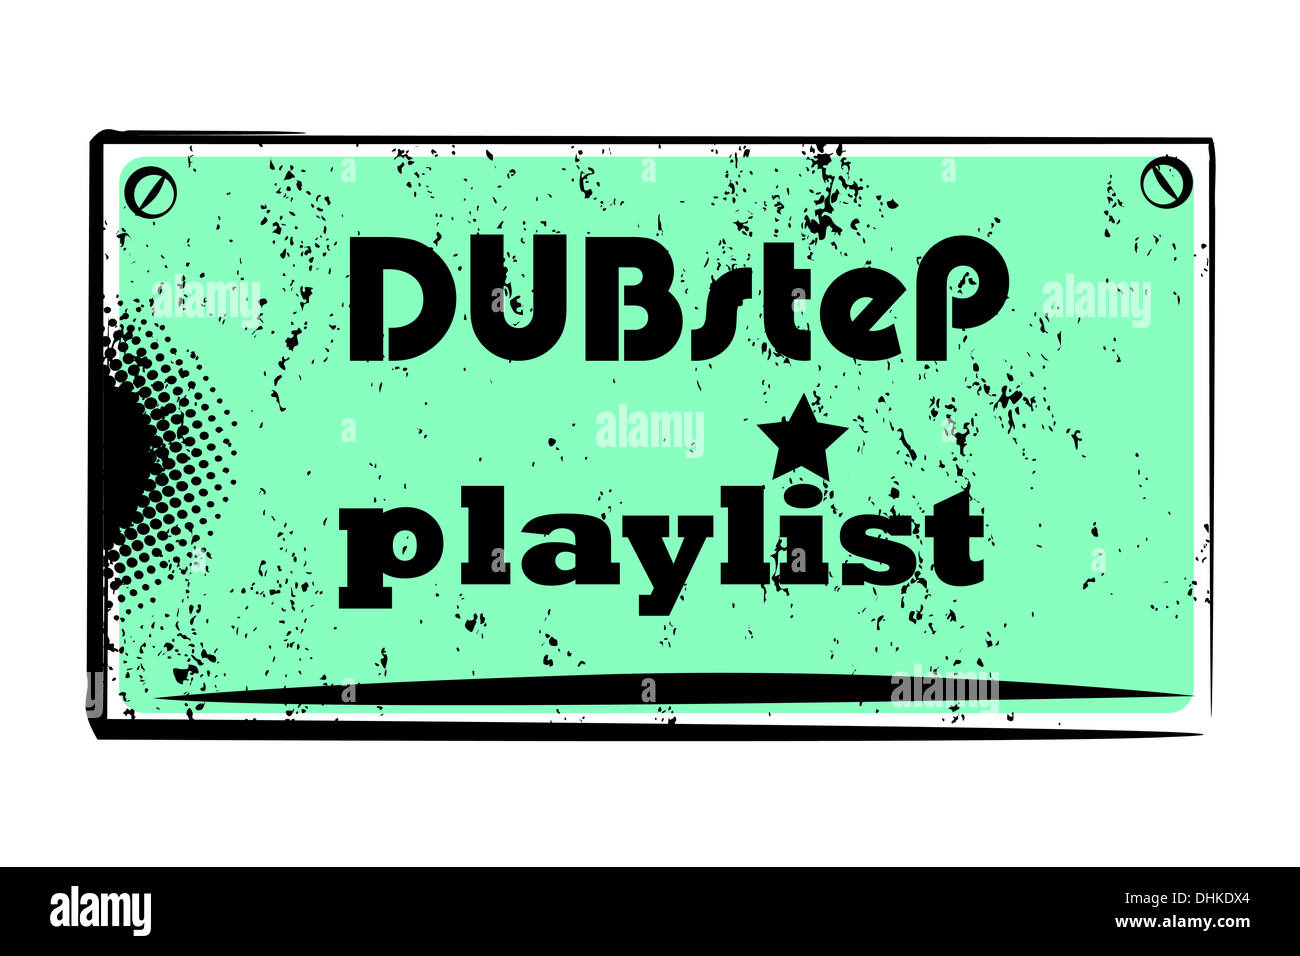 dubstep playlist stamp - Stock Image